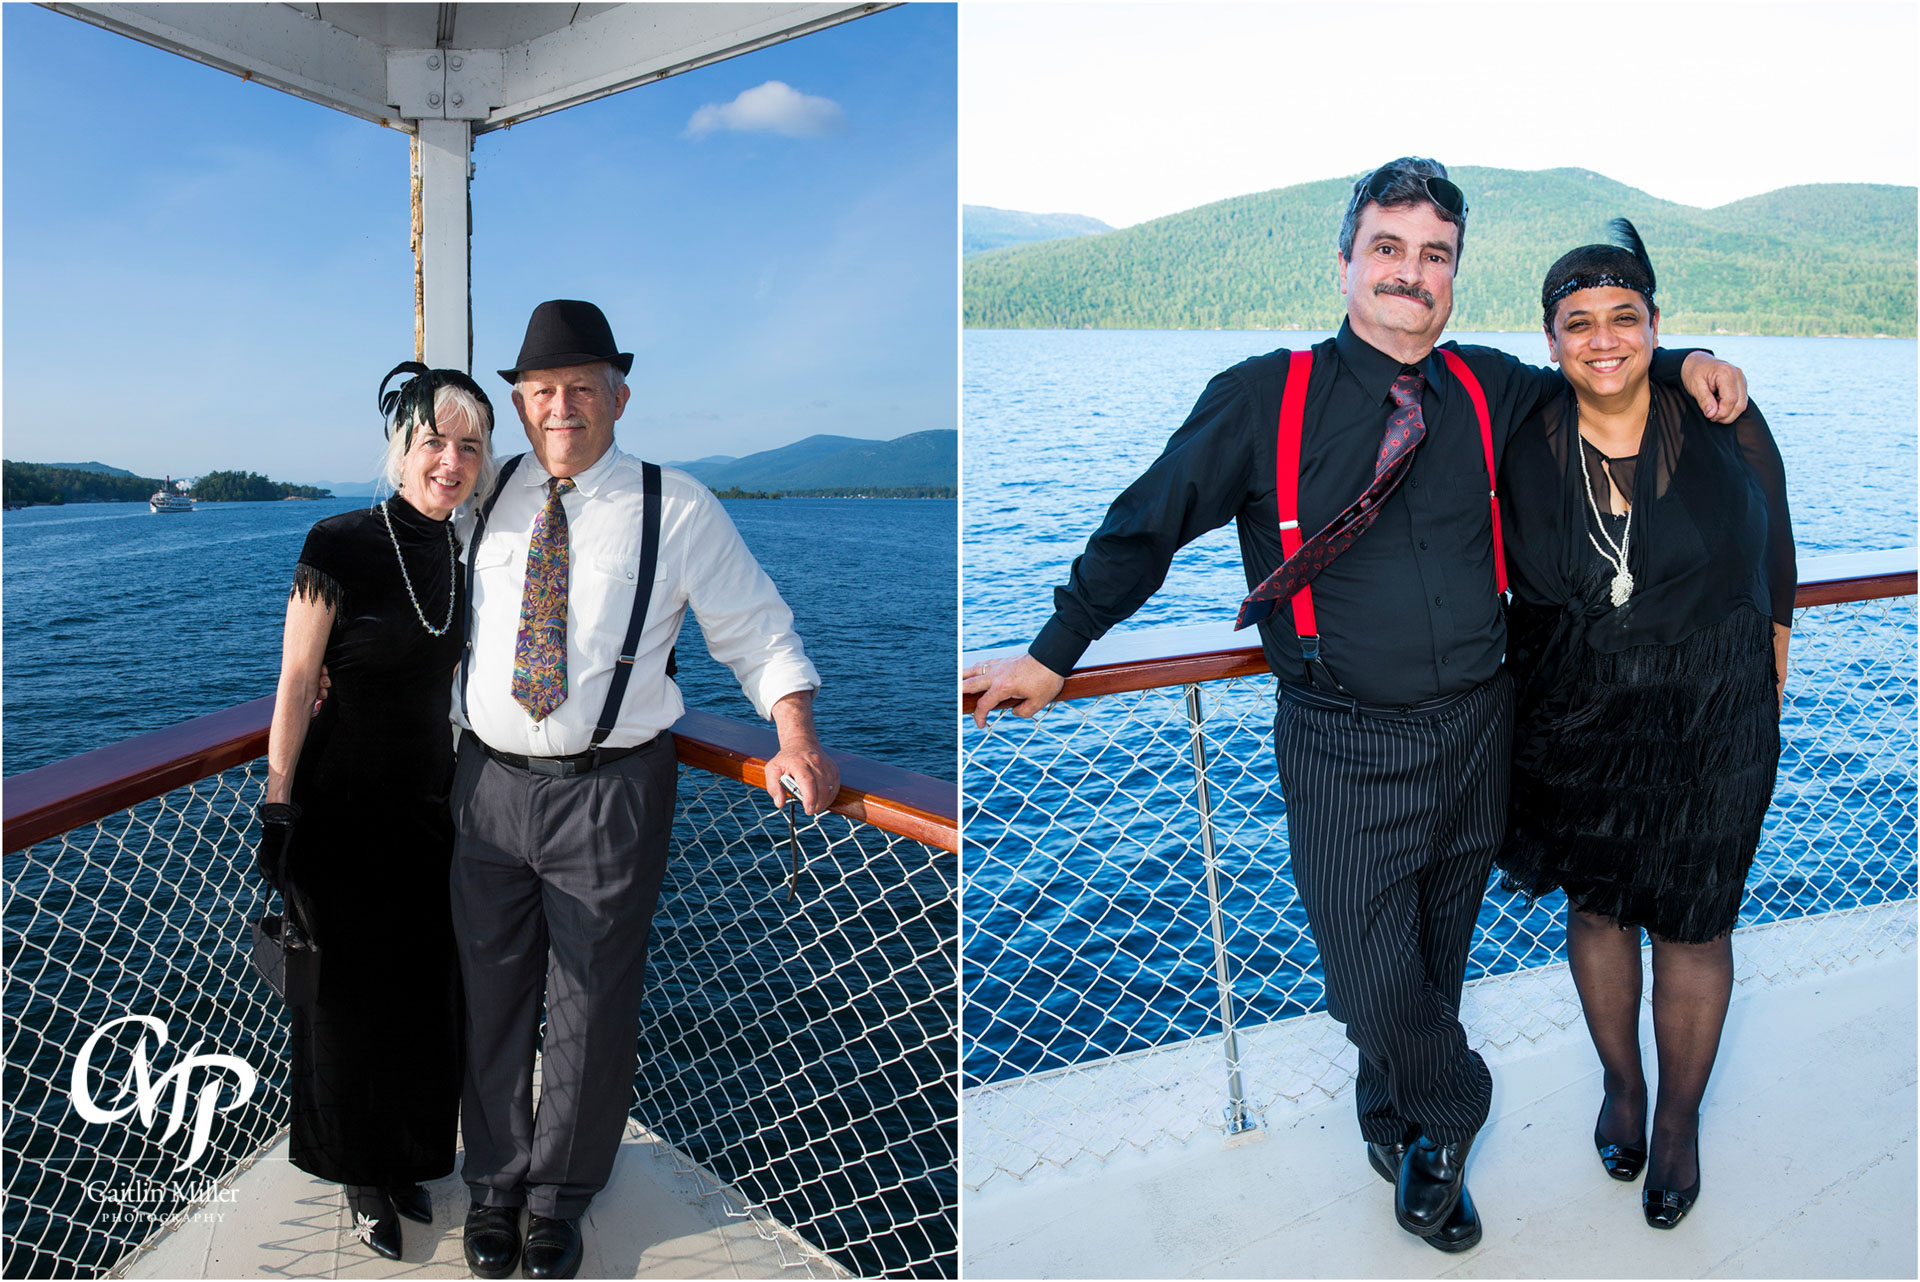 bombard-29.jpg from Jan and Robert's vow renewal on shoreline Cruise's Adirondac Boat on Lake George, NY by Saratoga Wedding Photographer Caitlin Miller Photography. Lake George Wedding Photographer. Stamford wedding photographer. Albany wedding photographer. Shoreline Cruises Wedding Photographer. Saratoga Wedding Photographer